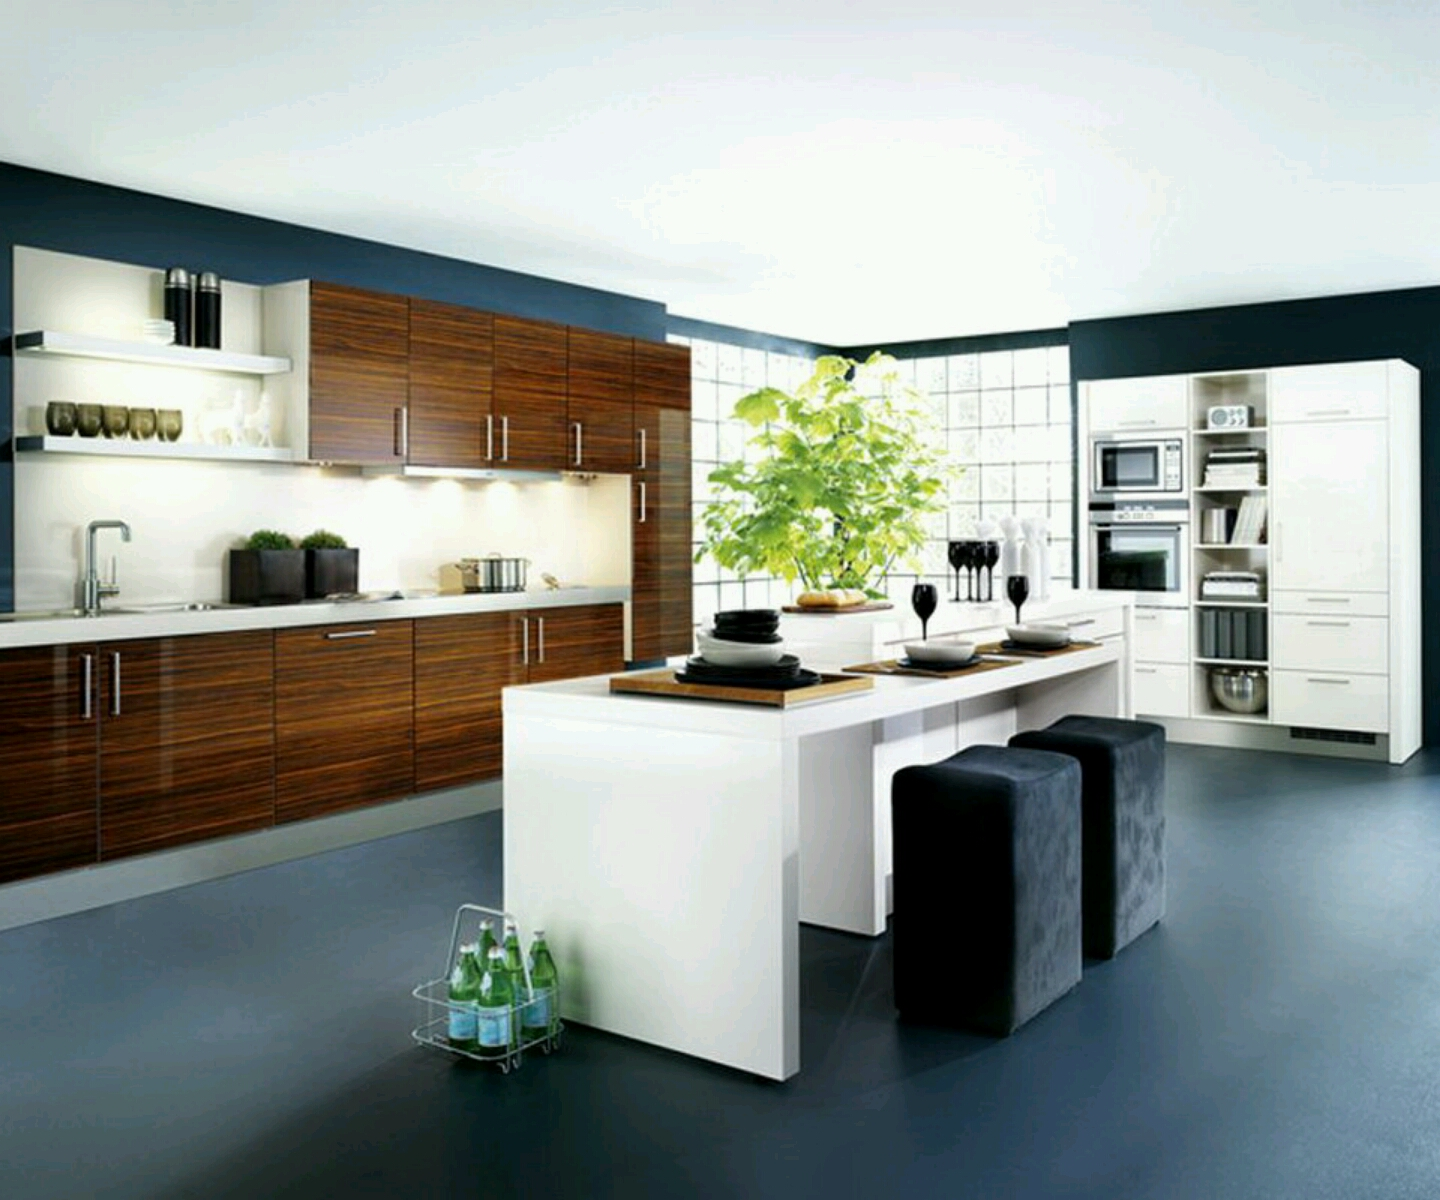 New home designs latest kitchen cabinets designs modern for Kitchen cabinets design